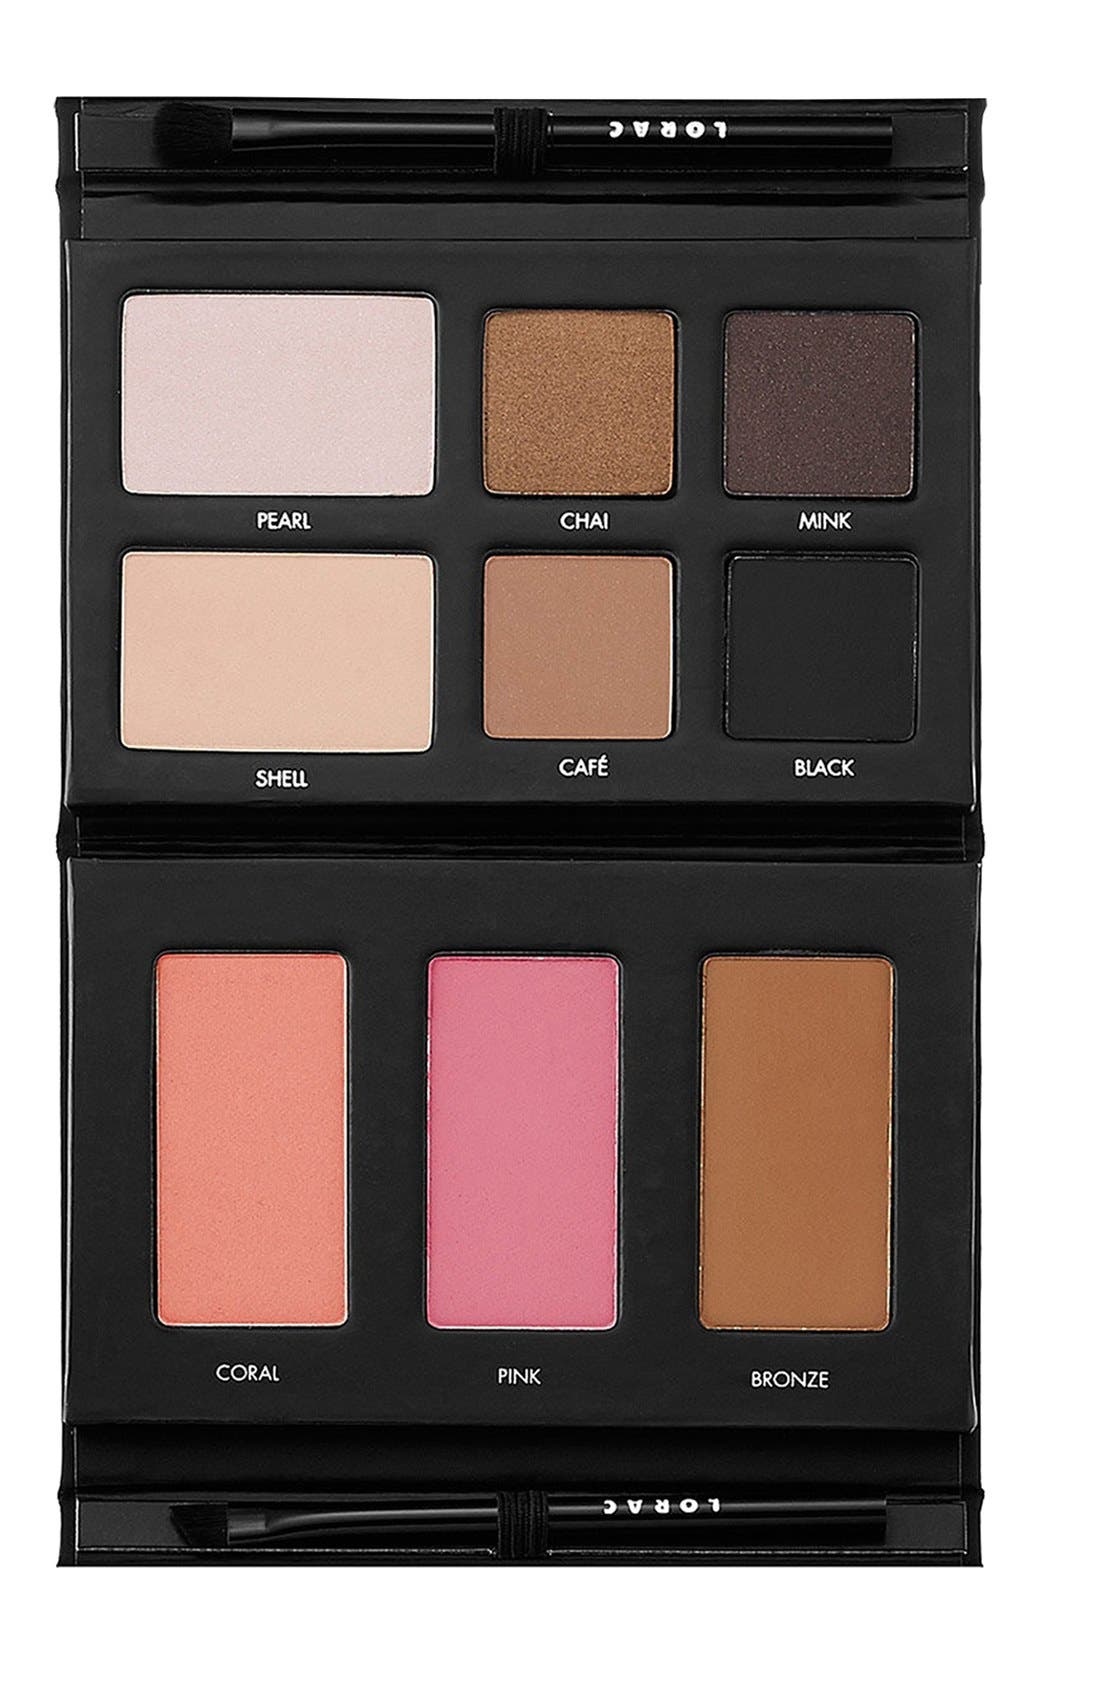 LORAC, 'PRO to Go' Eye/Cheek Palette, Main thumbnail 1, color, 000